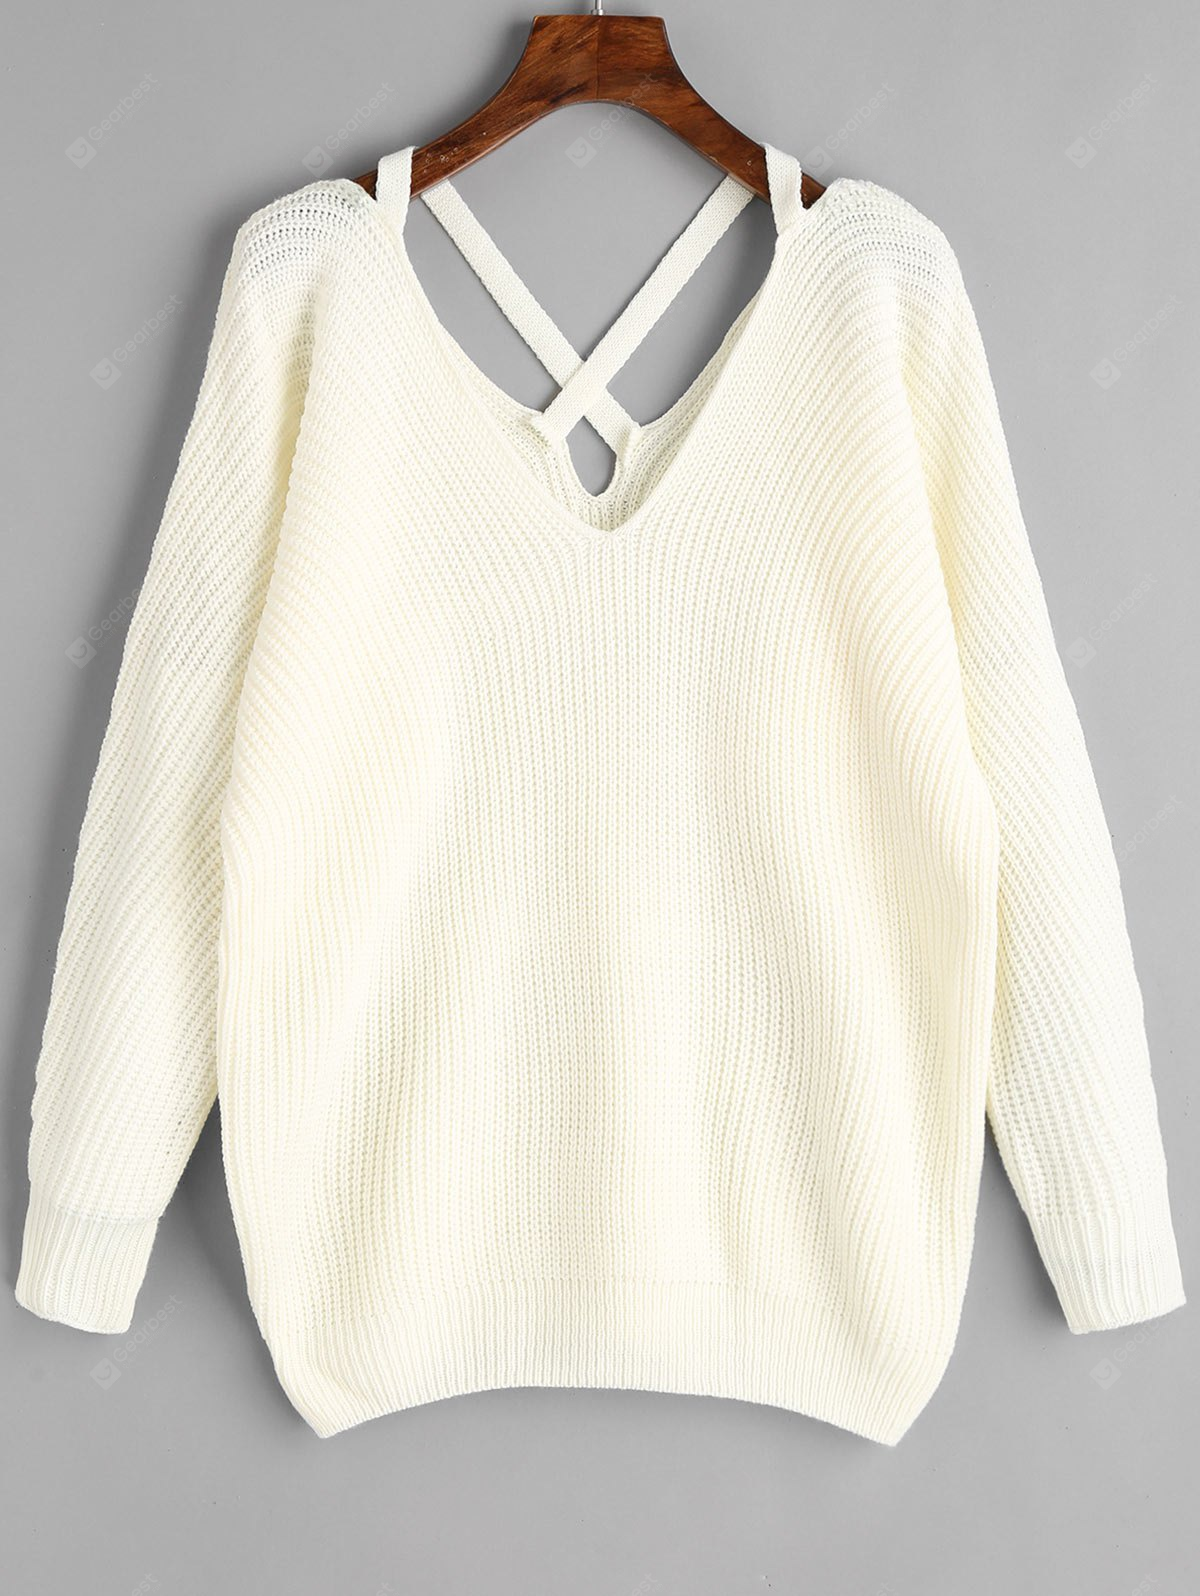 Criss Cross V Neck Pullover Sweater